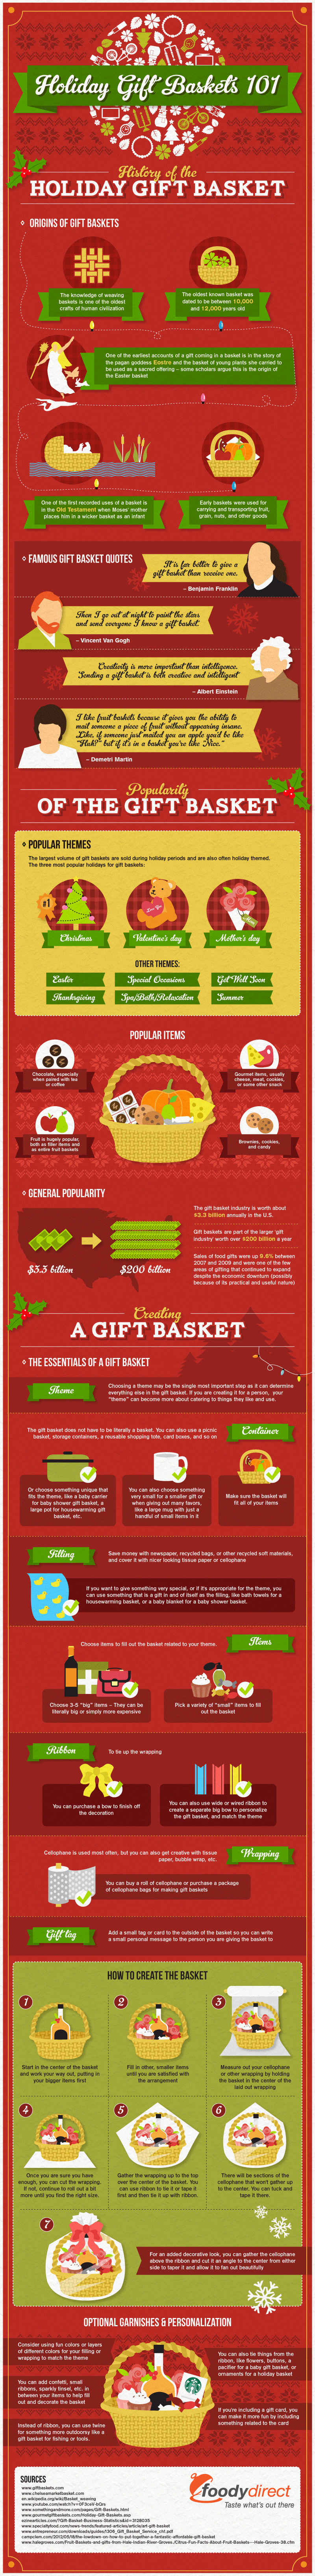 Holiday Gift Baskets 101